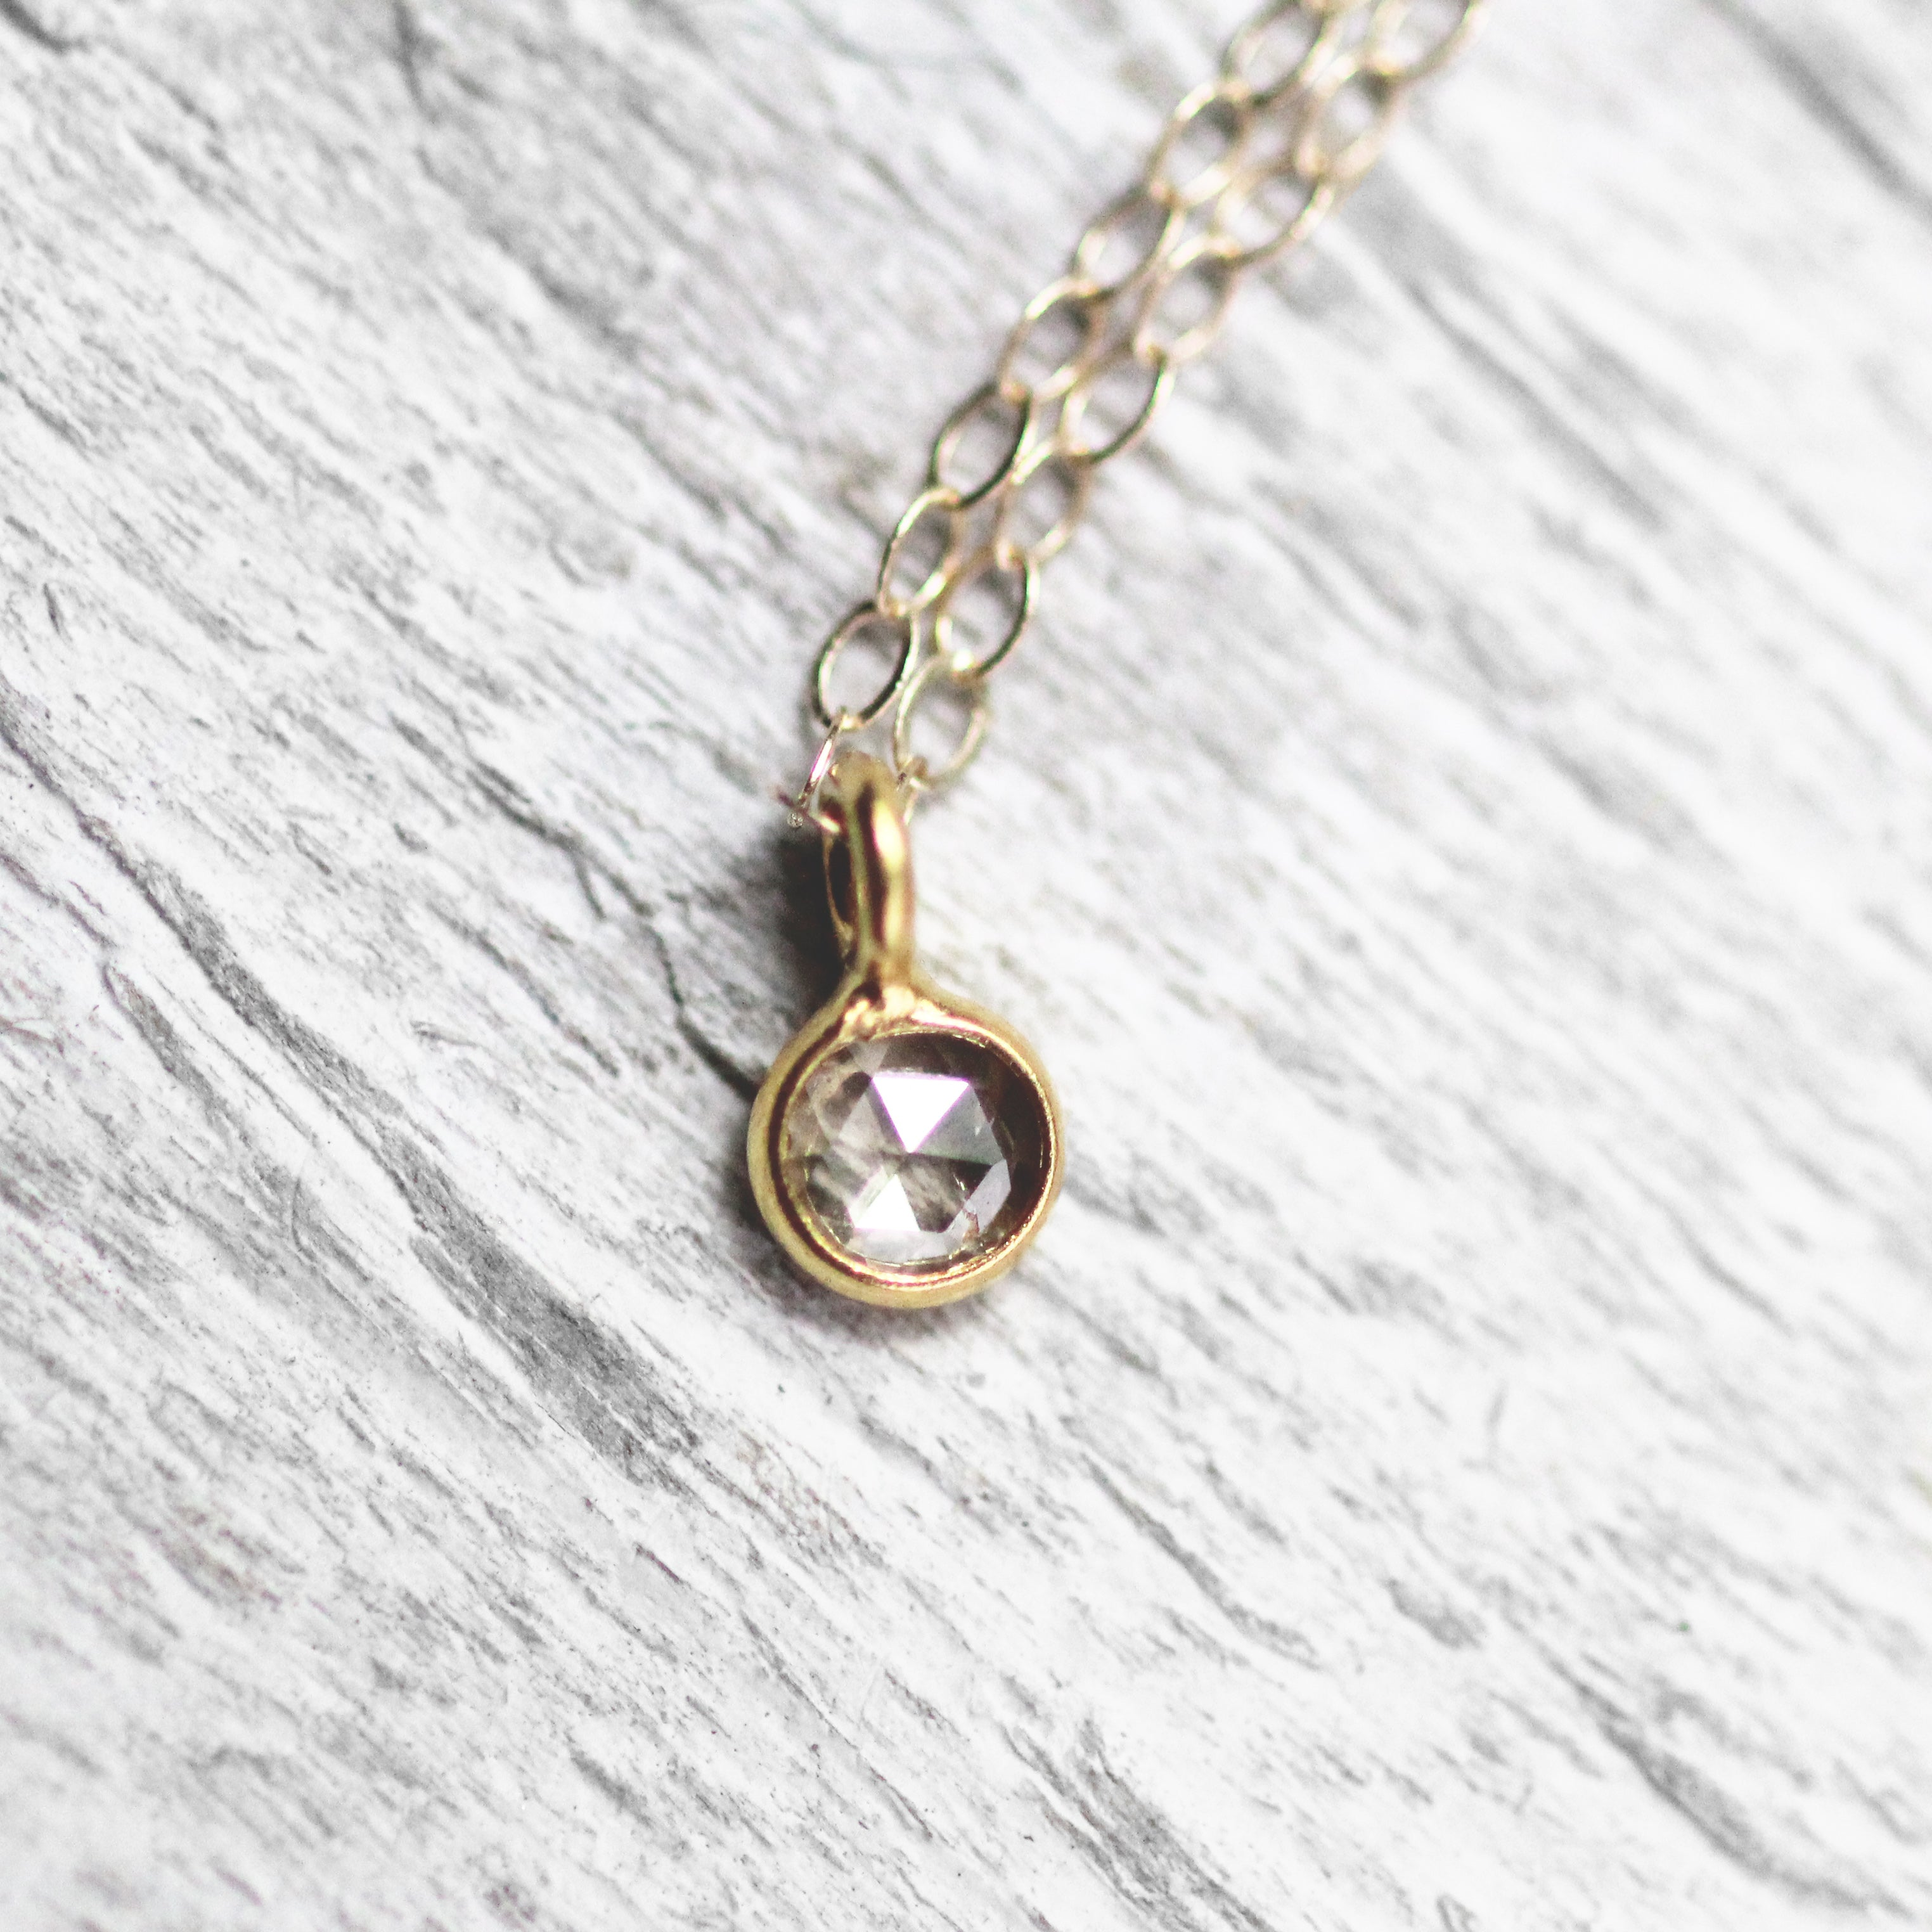 Petite 14k Clear Diamond Necklace - Ready to ship - Celestial Diamonds ® by Midwinter Co.